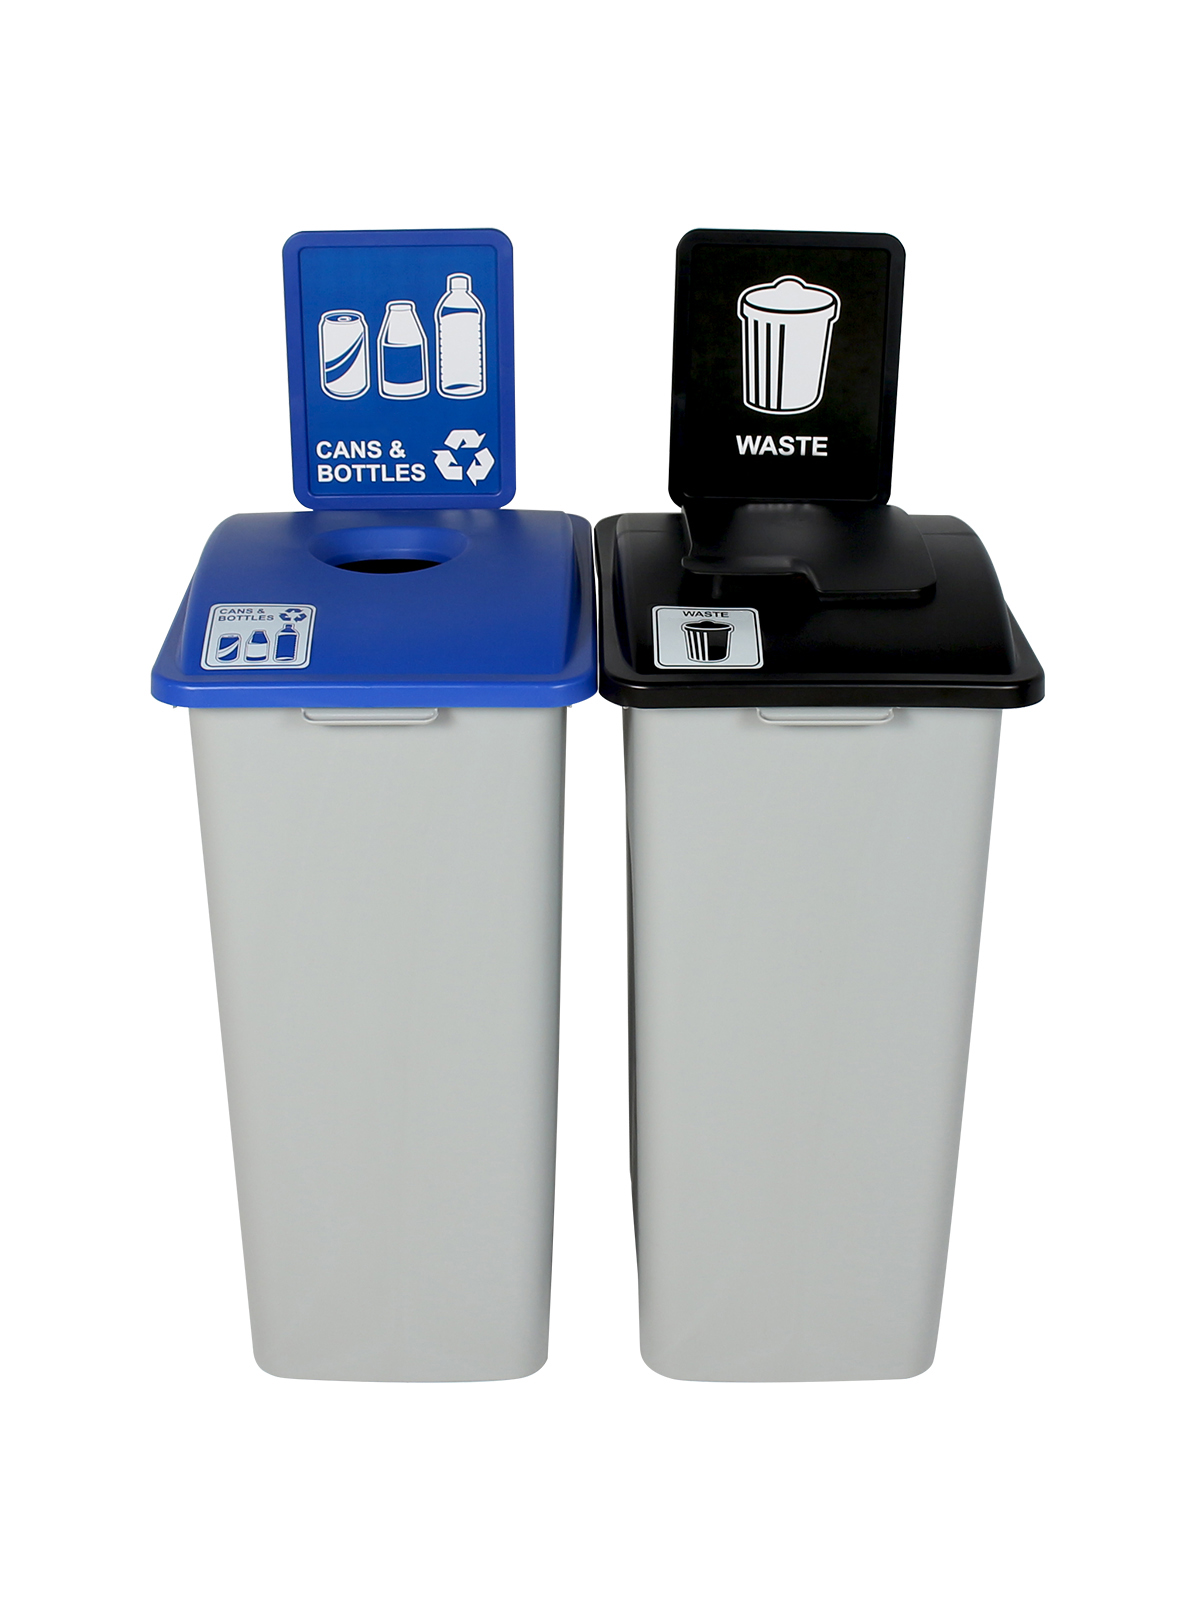 WASTE WATCHER XL - Double - Cans & Bottles-Waste - Circle-Solid Lift - Grey-Blue-Black